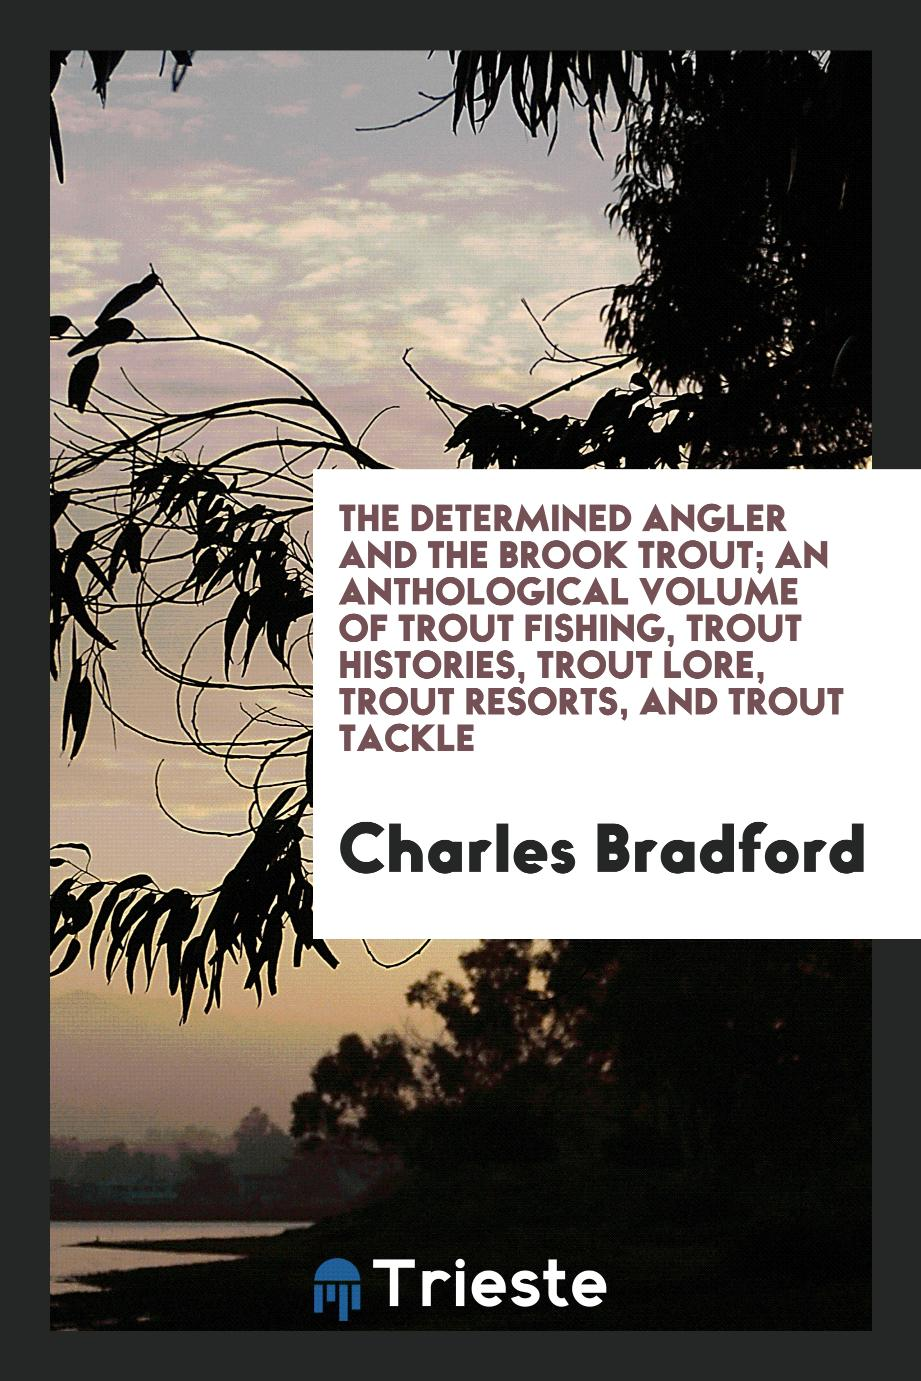 The determined angler and the brook trout; an anthological volume of trout fishing, trout histories, trout lore, trout resorts, and trout tackle